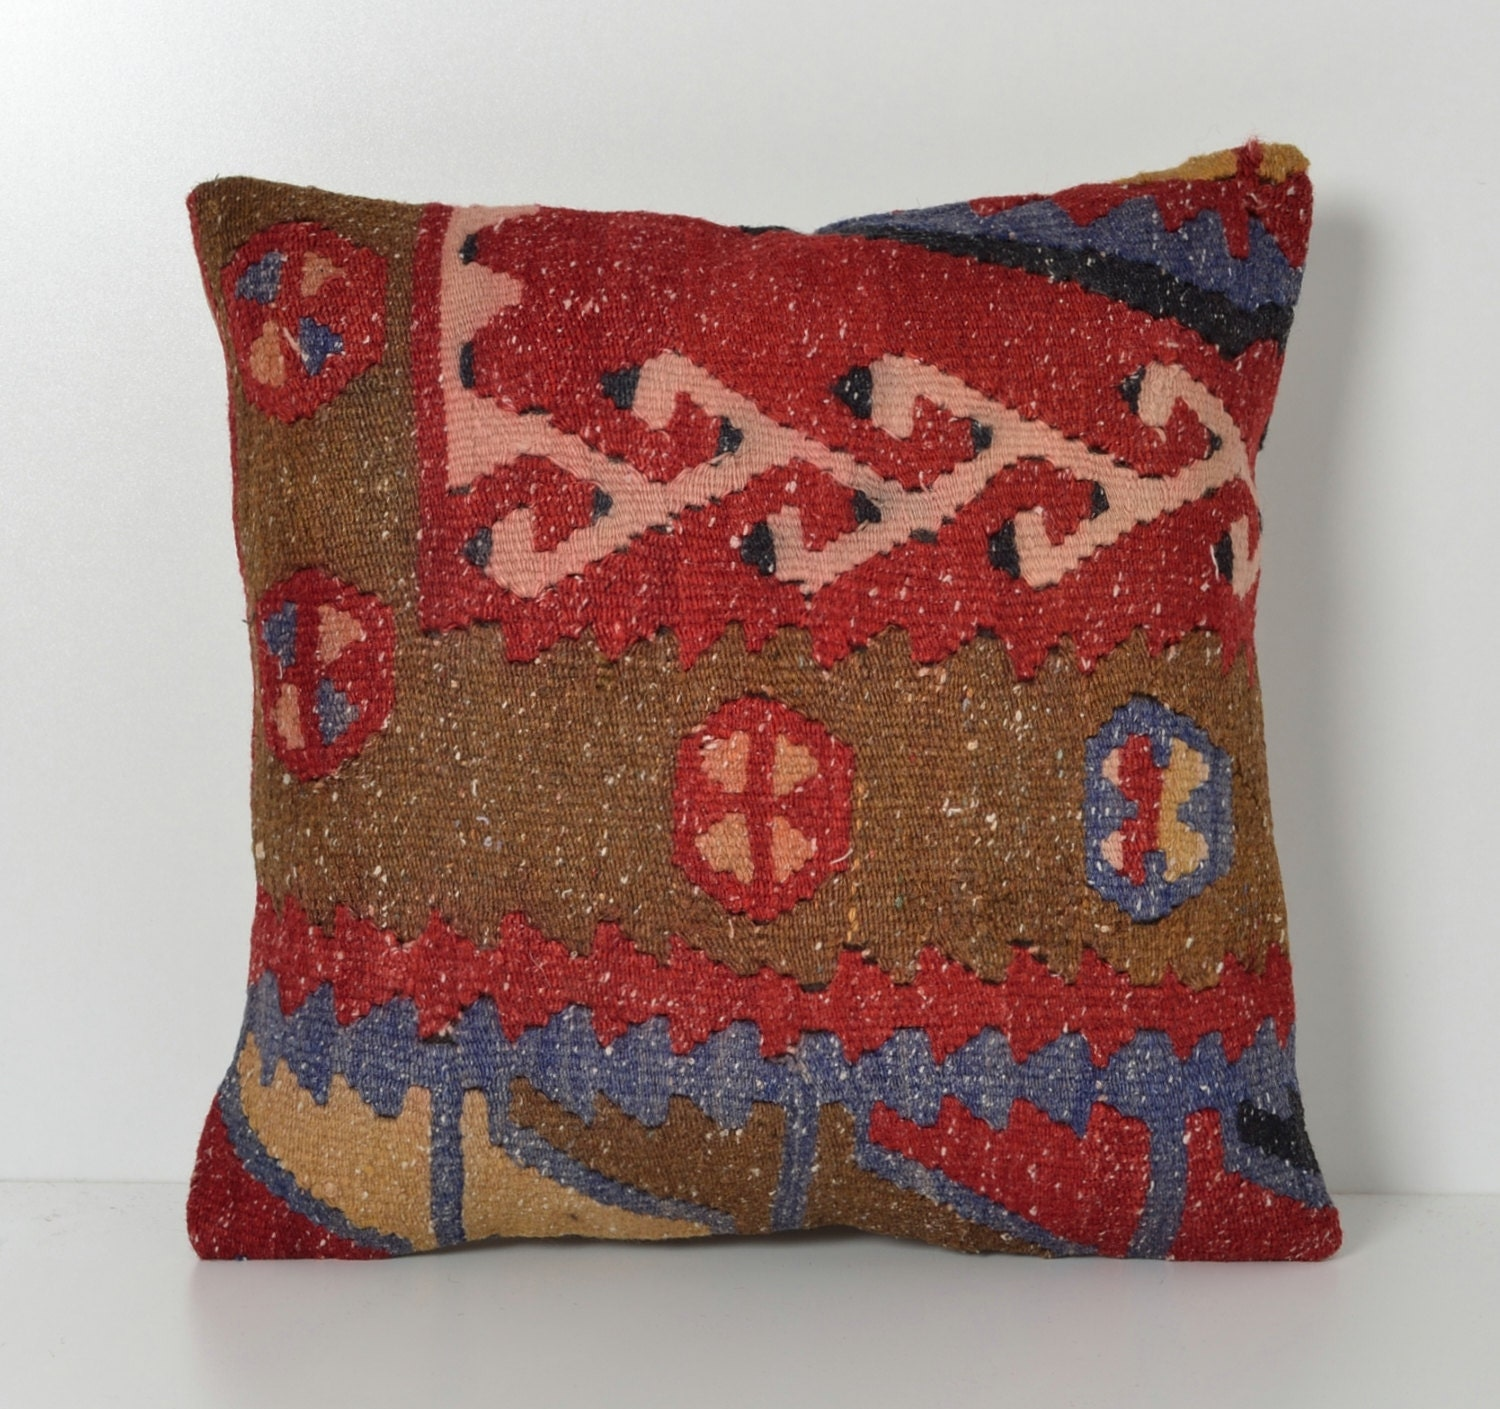 Turkish Kilim Throw Pillows : Decorative Kilim Pillows Turkish Kilim Pillow Cover